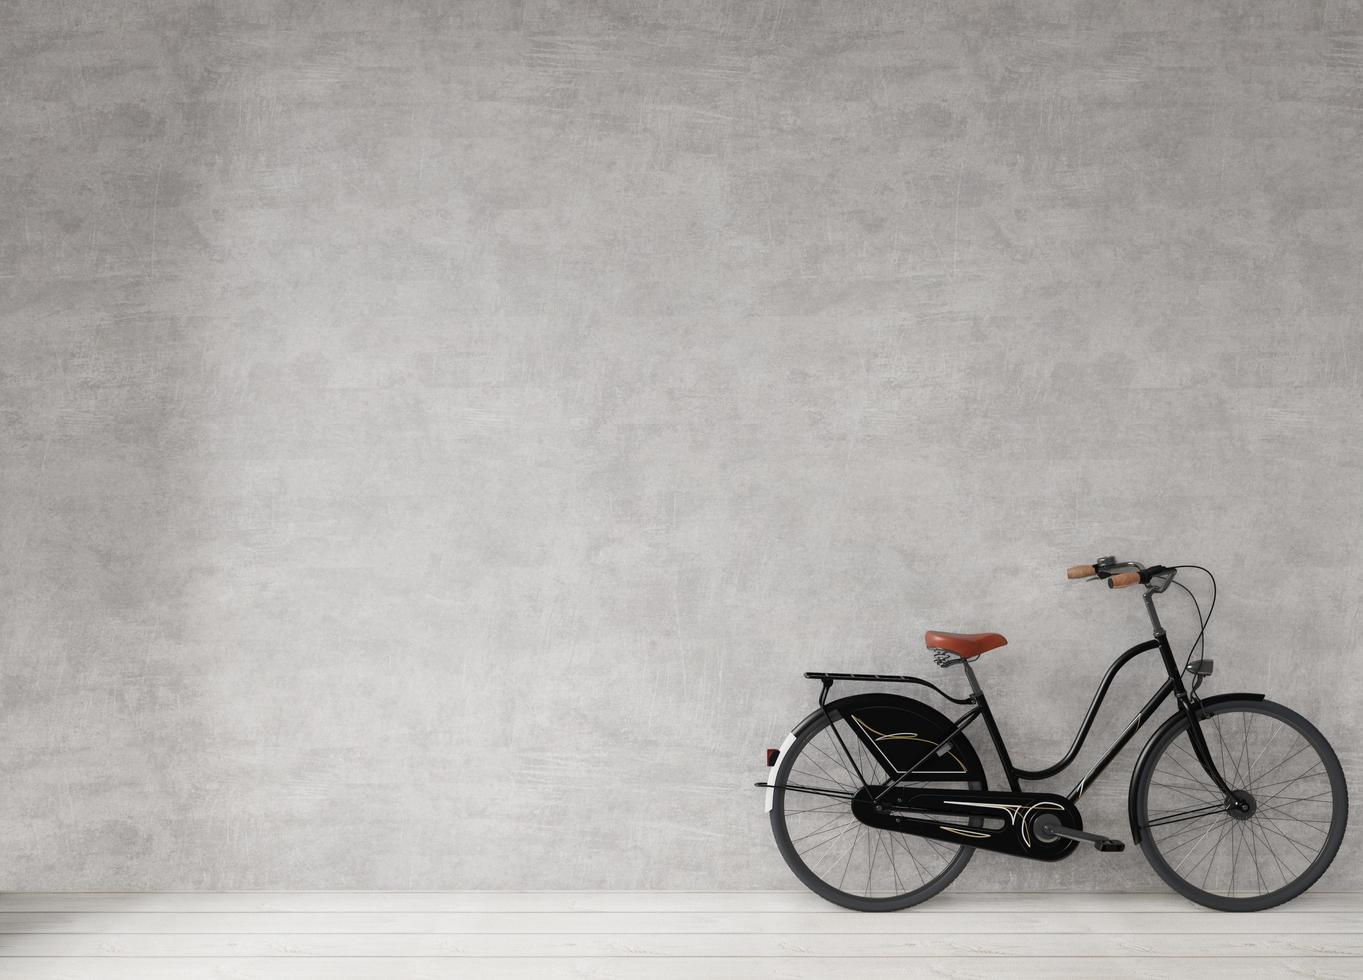 Bicycle against a concrete wall photo